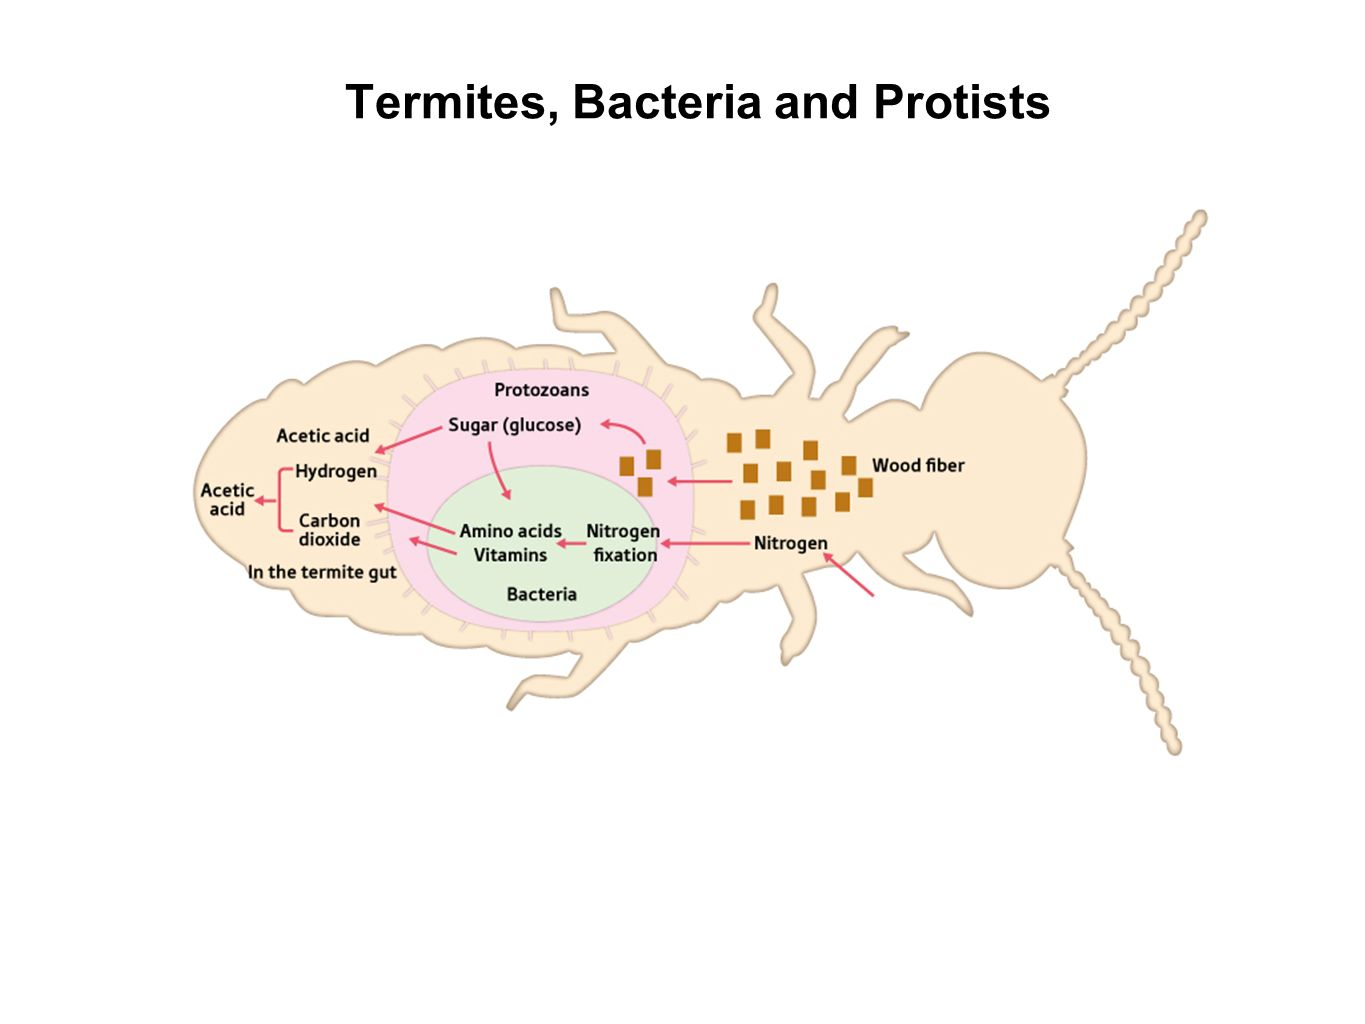 protozoa and termites symbiotic relationship in humans